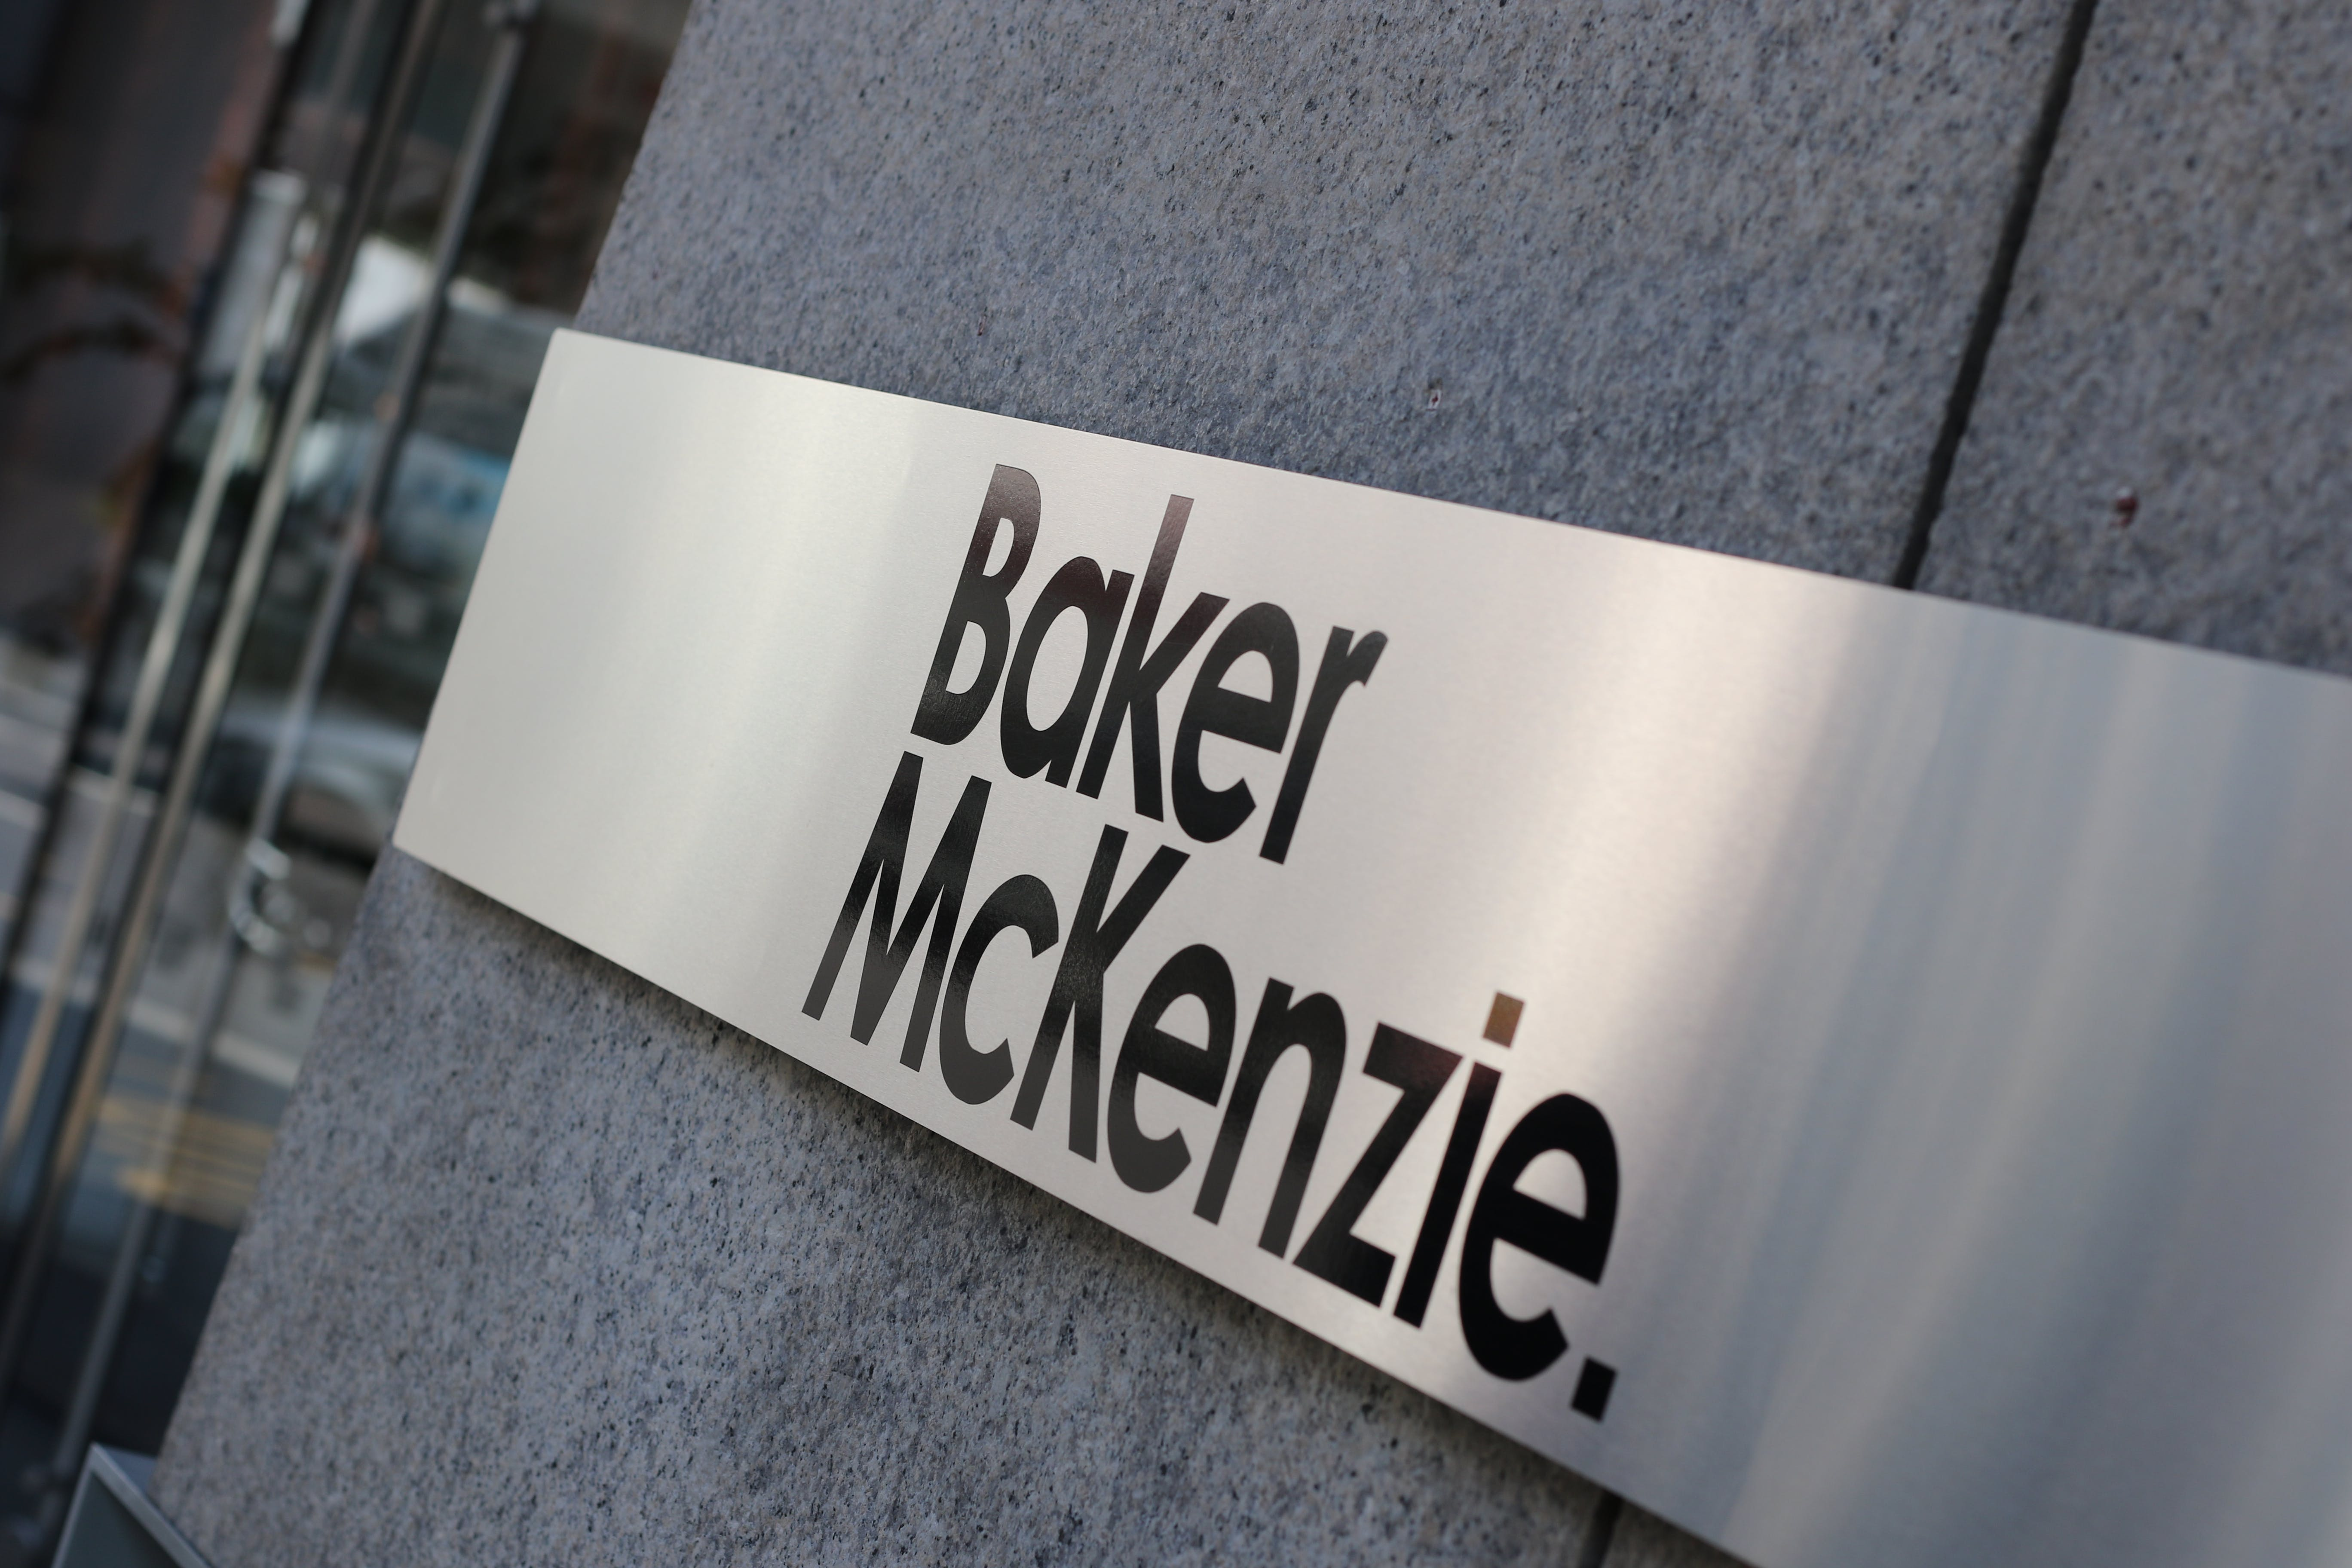 Baker McKenzie posts spring 2019 retention – The Lawyer | Legal